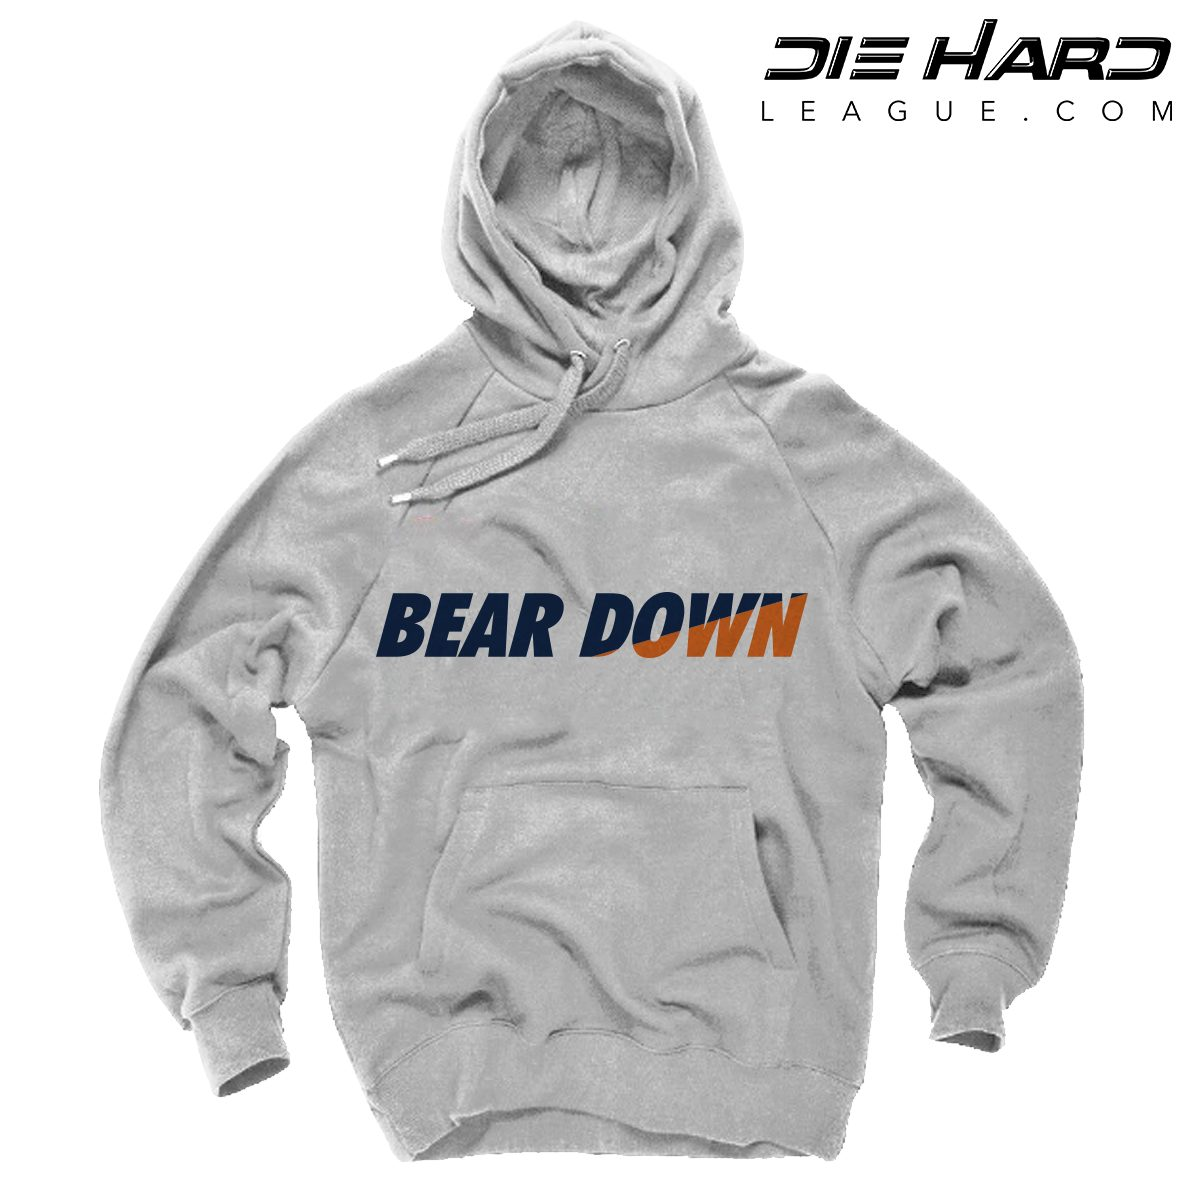 factory authentic b819b 986d8 Bears Hoodies Chicago - Bear Down White Hoodie [Best Priced]